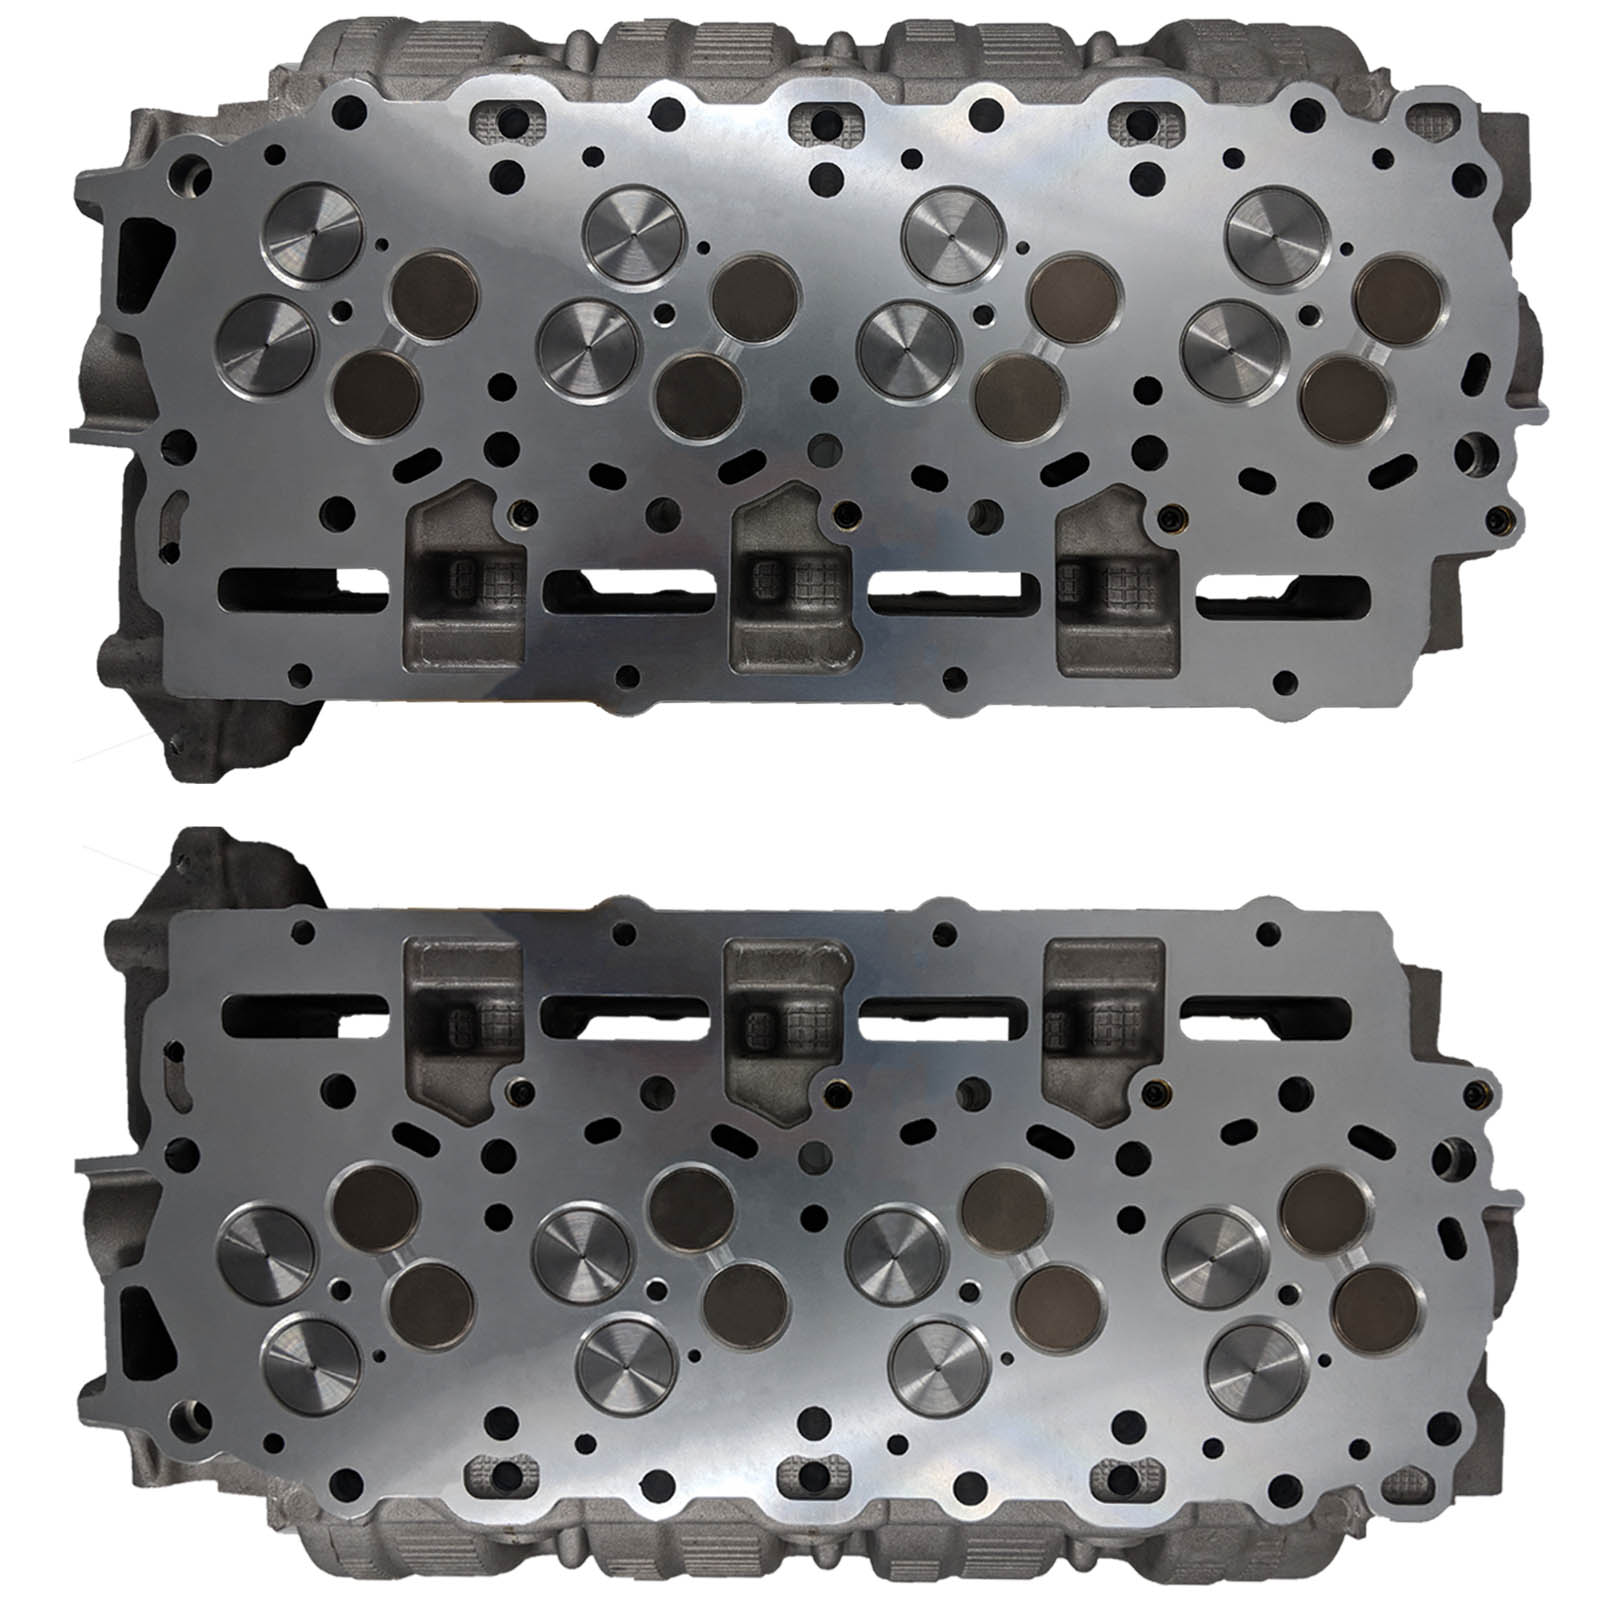 Cylinder Heads (2) Complete with Valve Train 2011-14 - DK-FD6.7Loaded